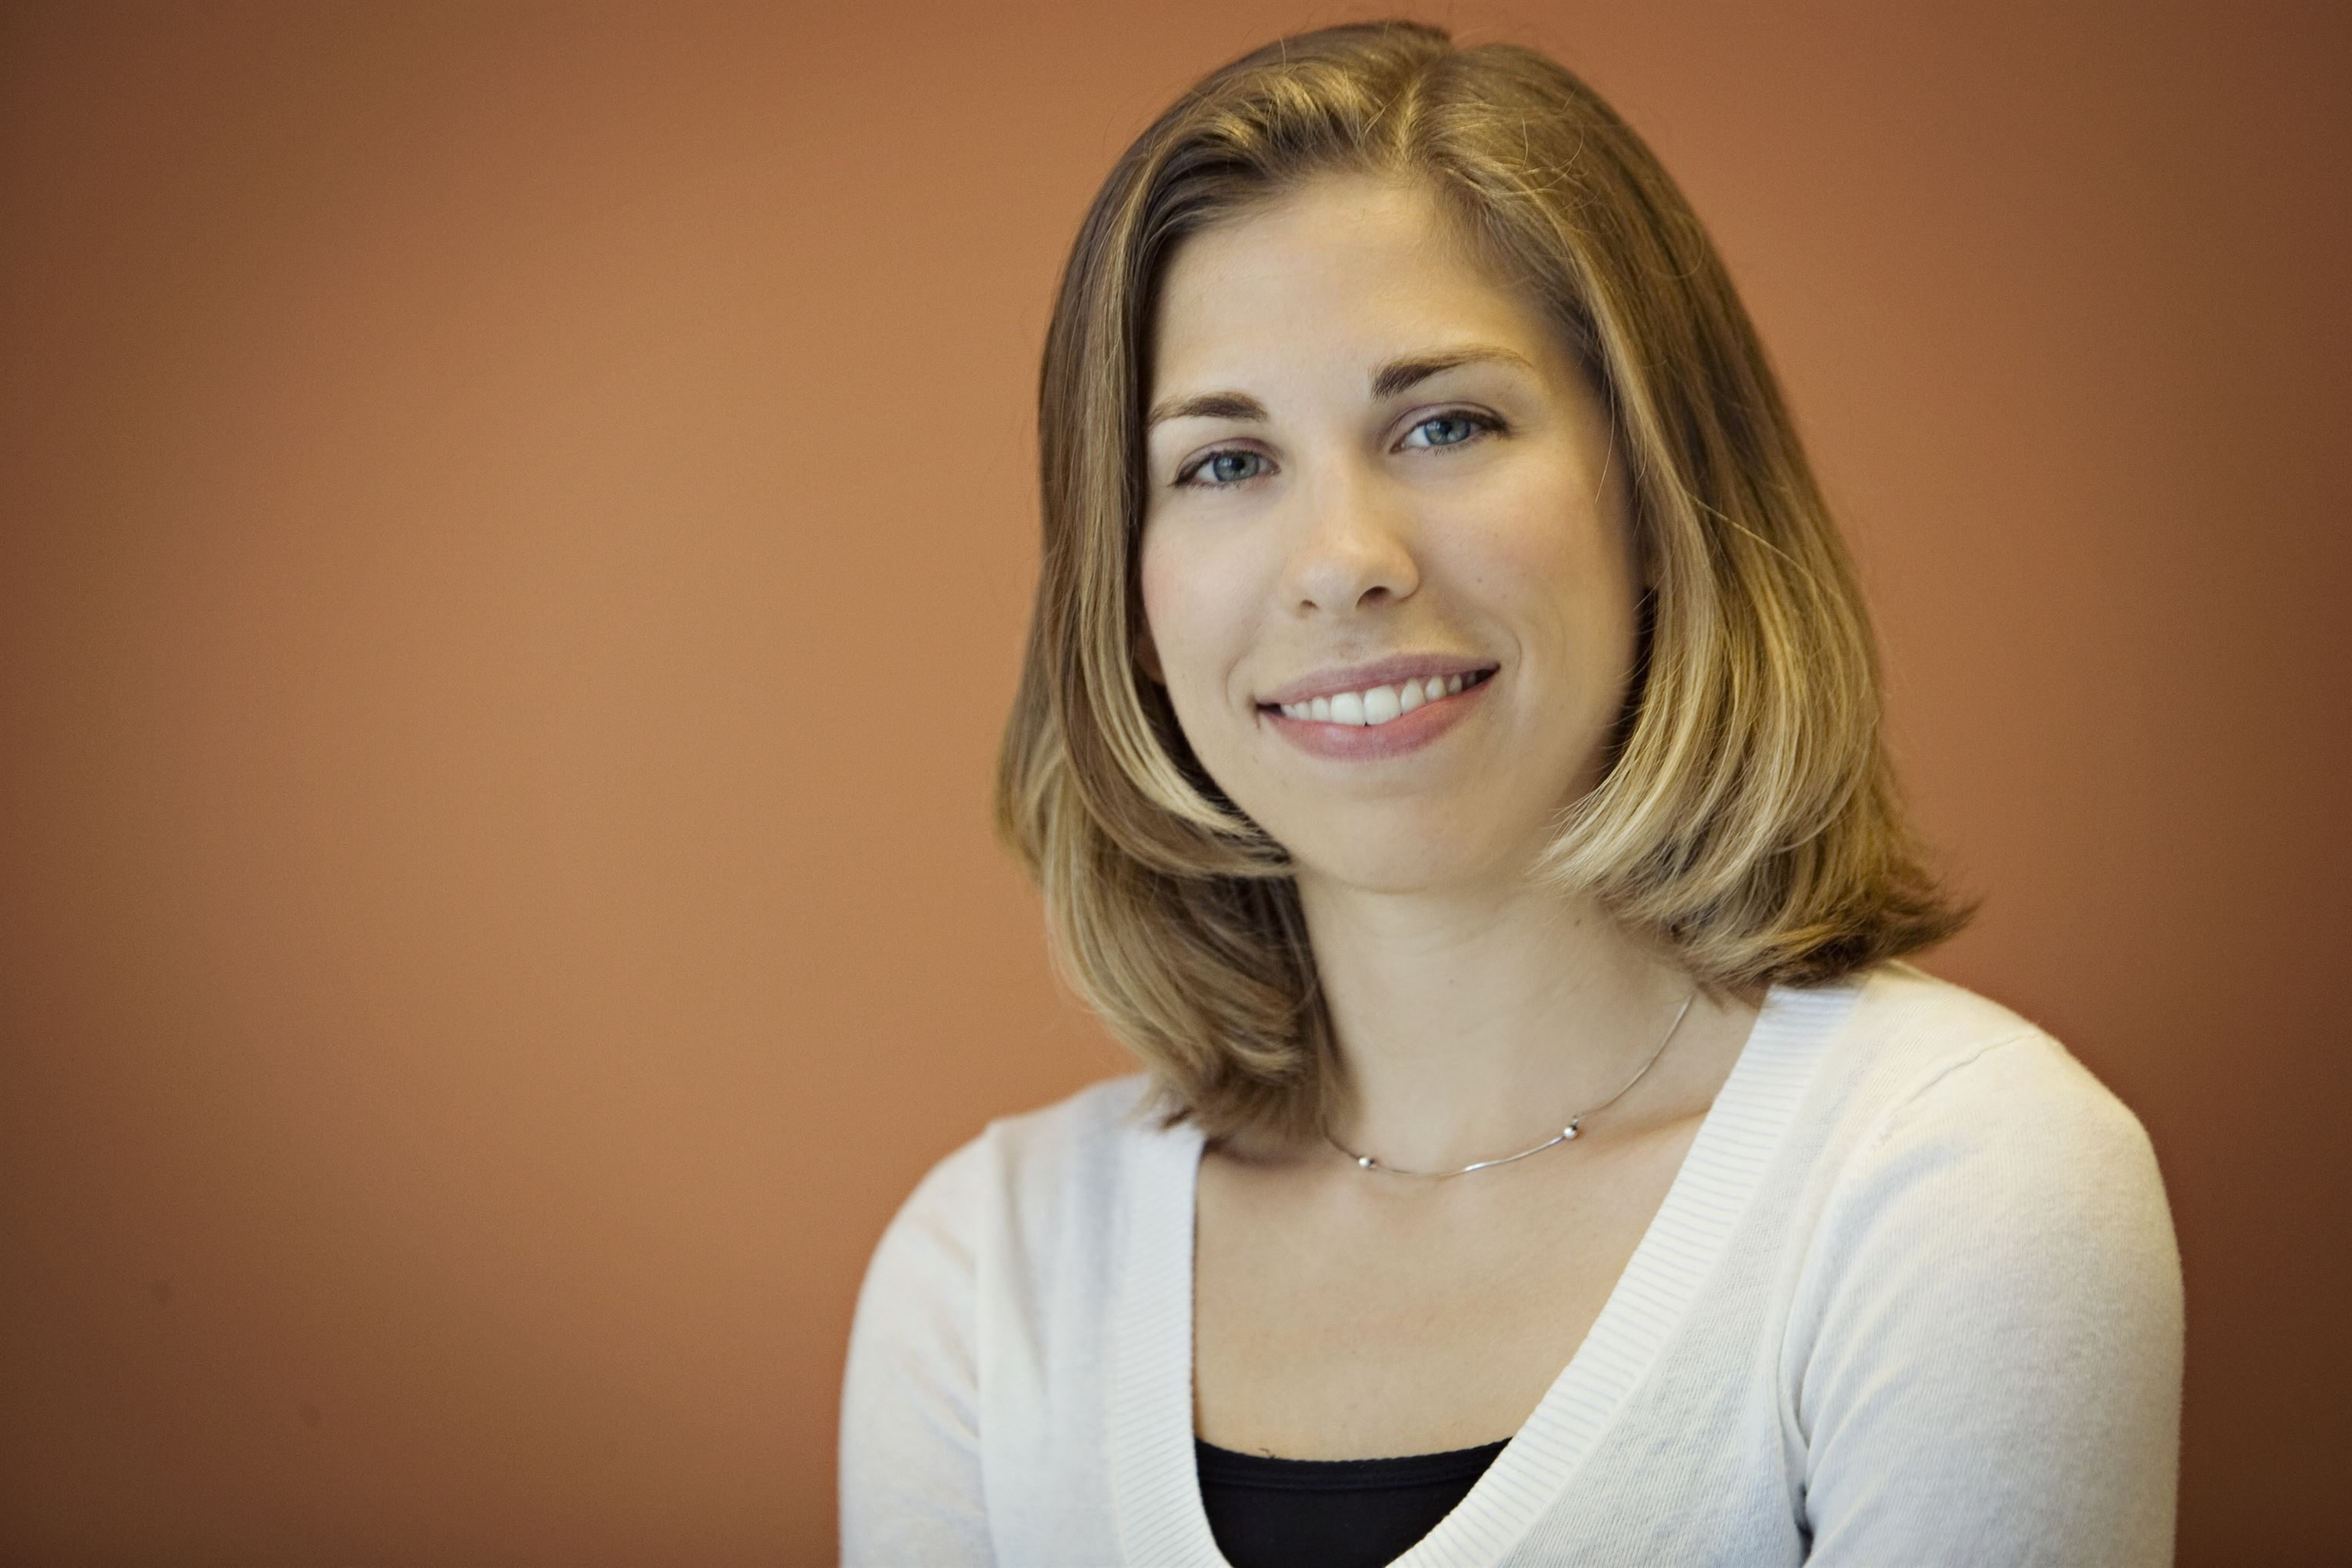 Aimee Shea, MPH, RD, CSO, LD, a registered dietitian and board certified specialist in oncology nutrition with Meals to Heal.